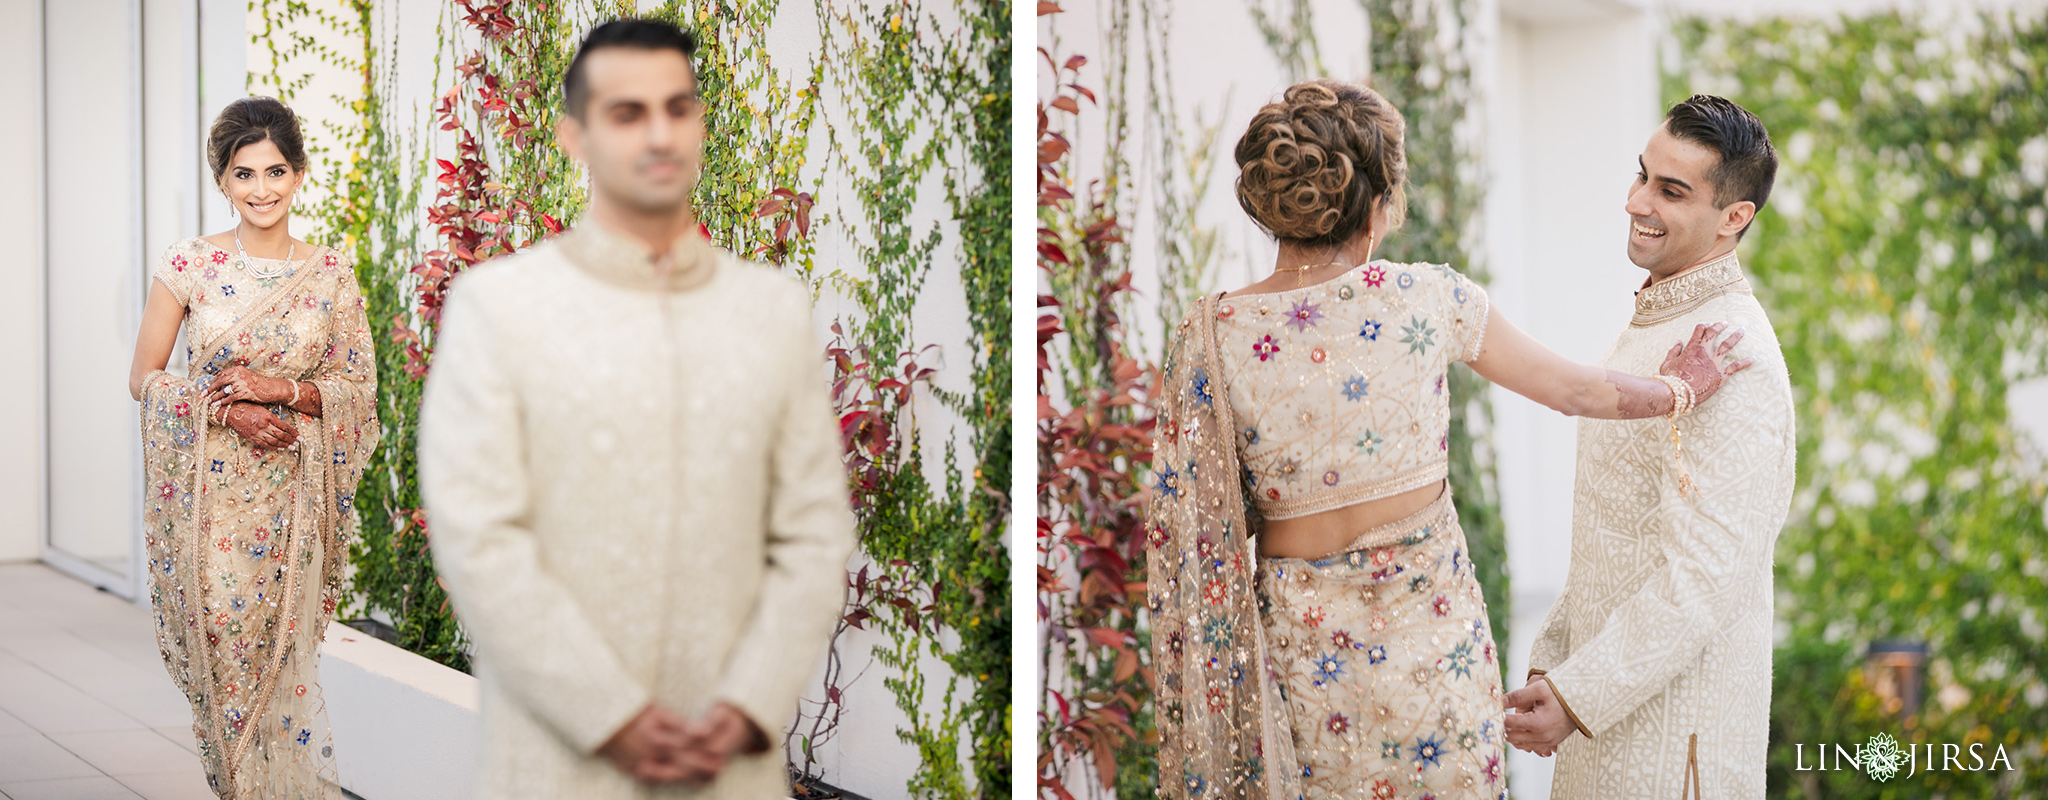 20 beverly hilton los angeles muslim wedding